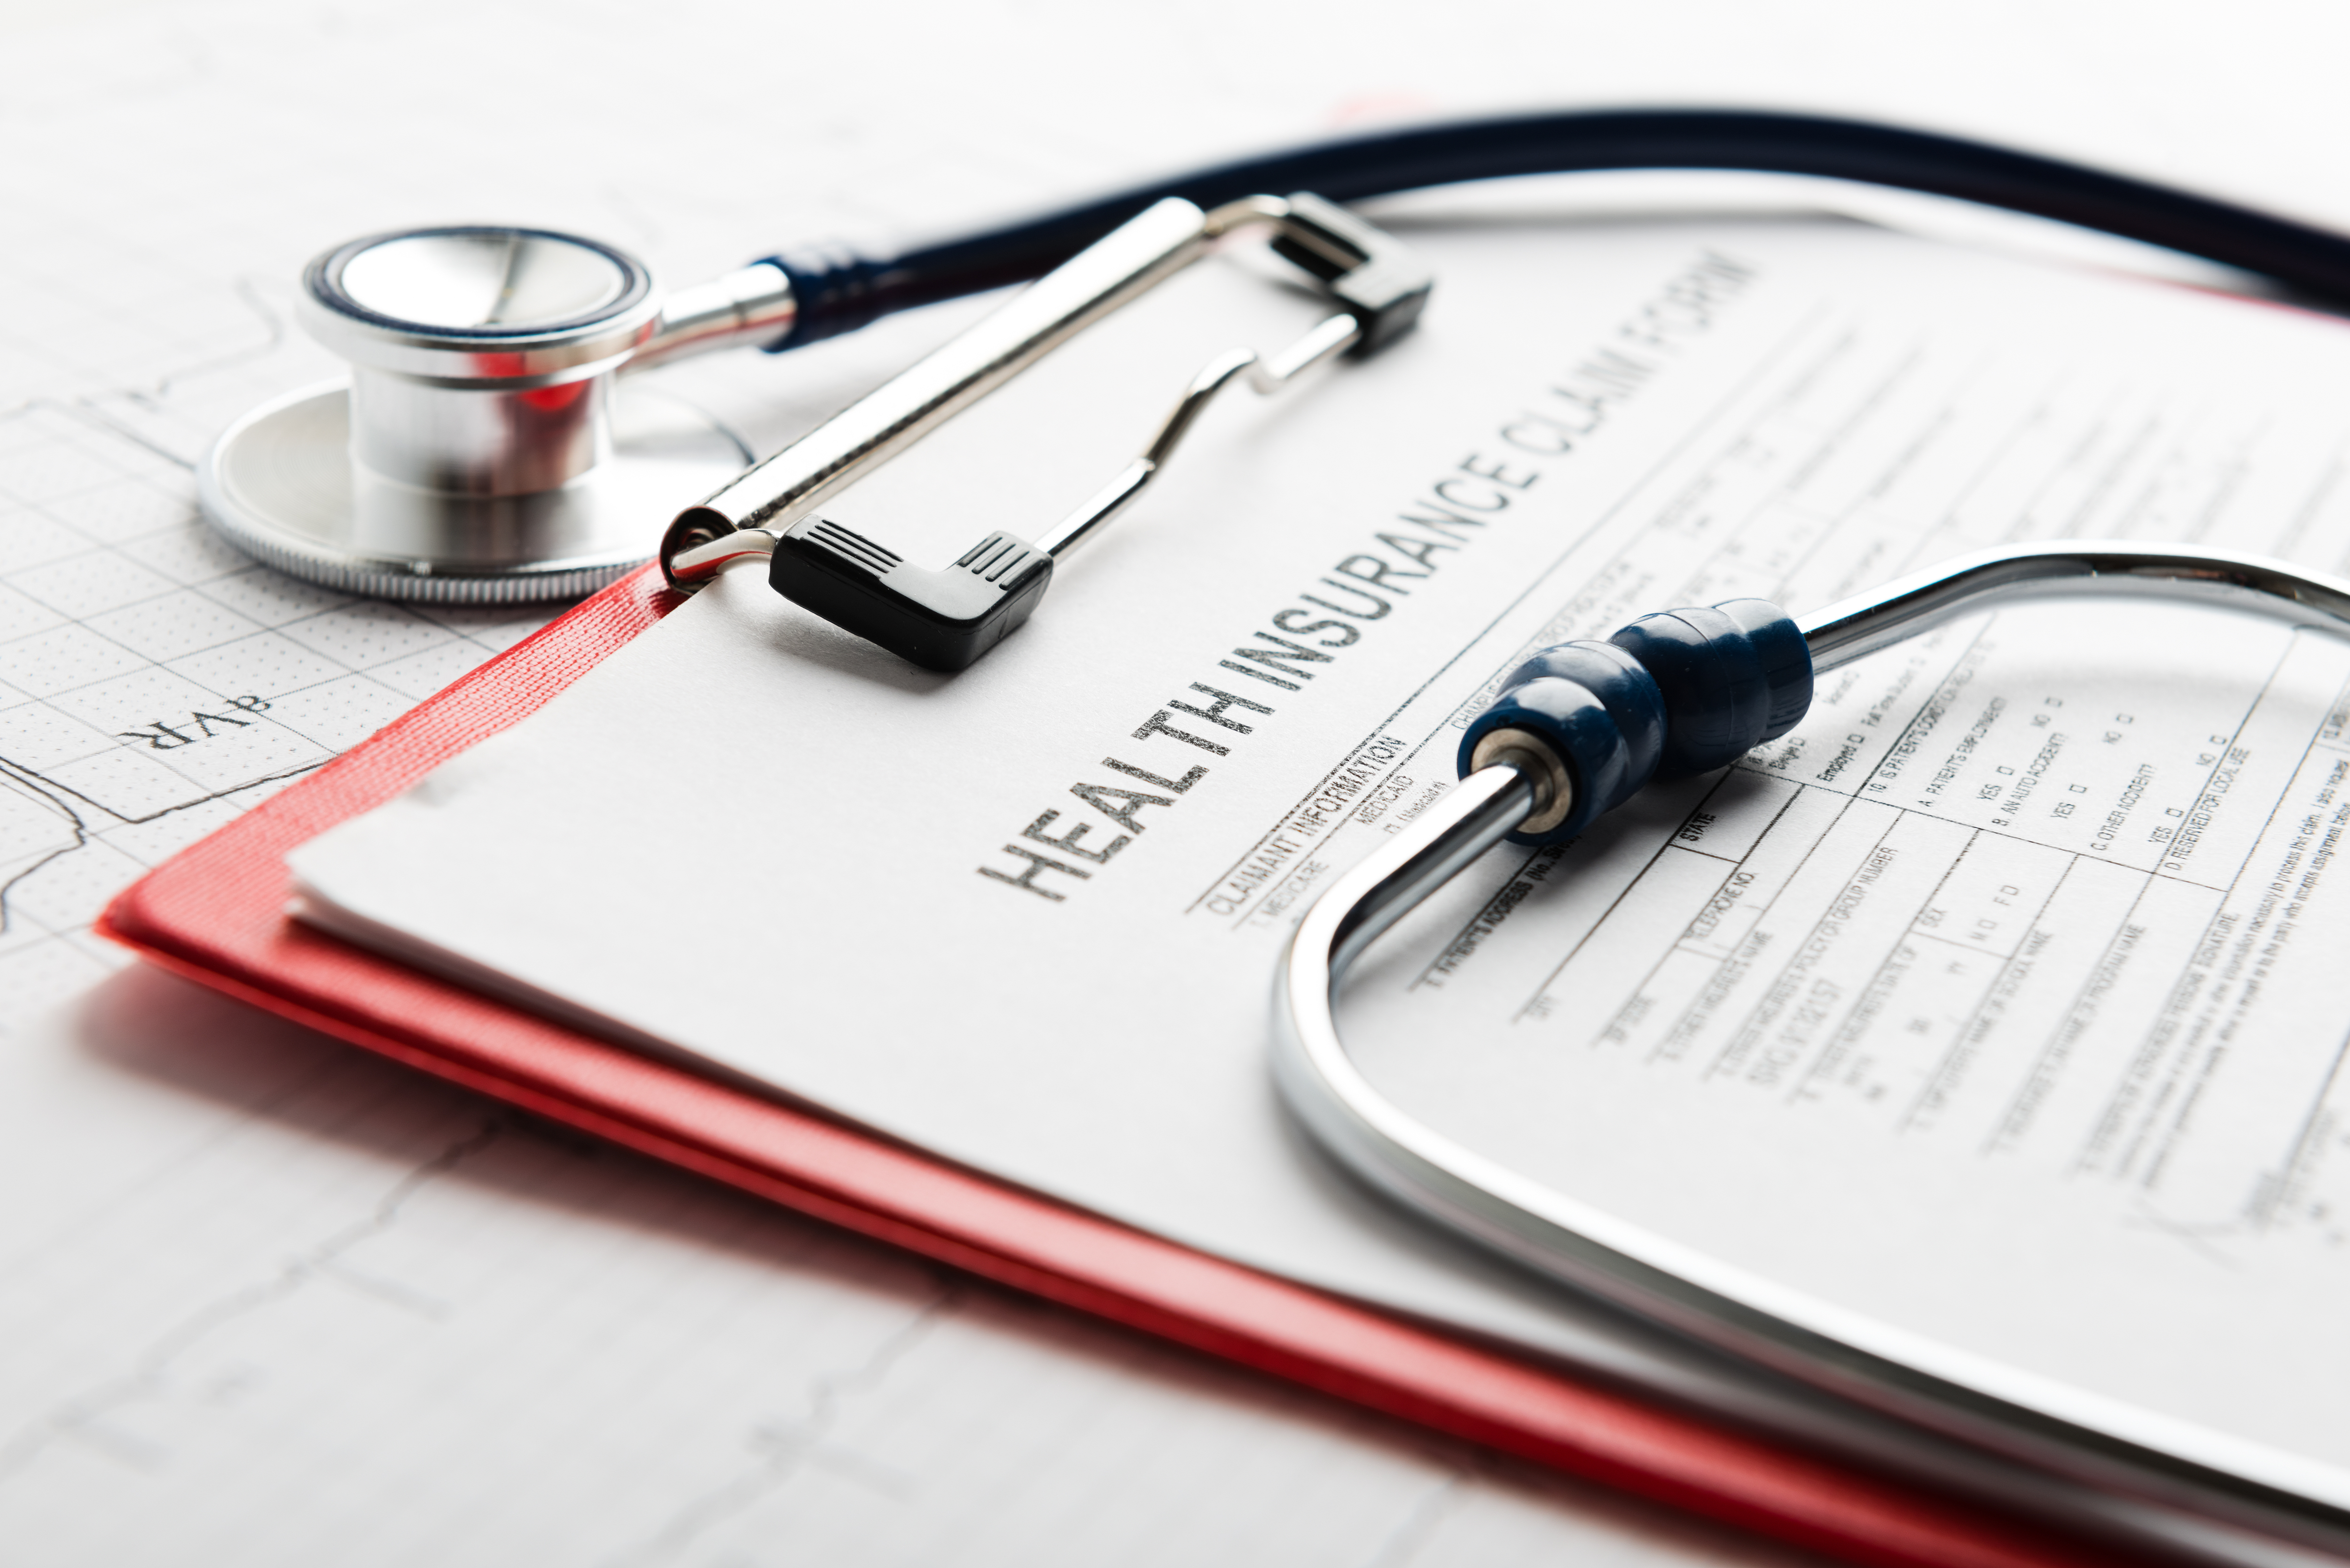 stethoscope_and_health_insurance_claim_form